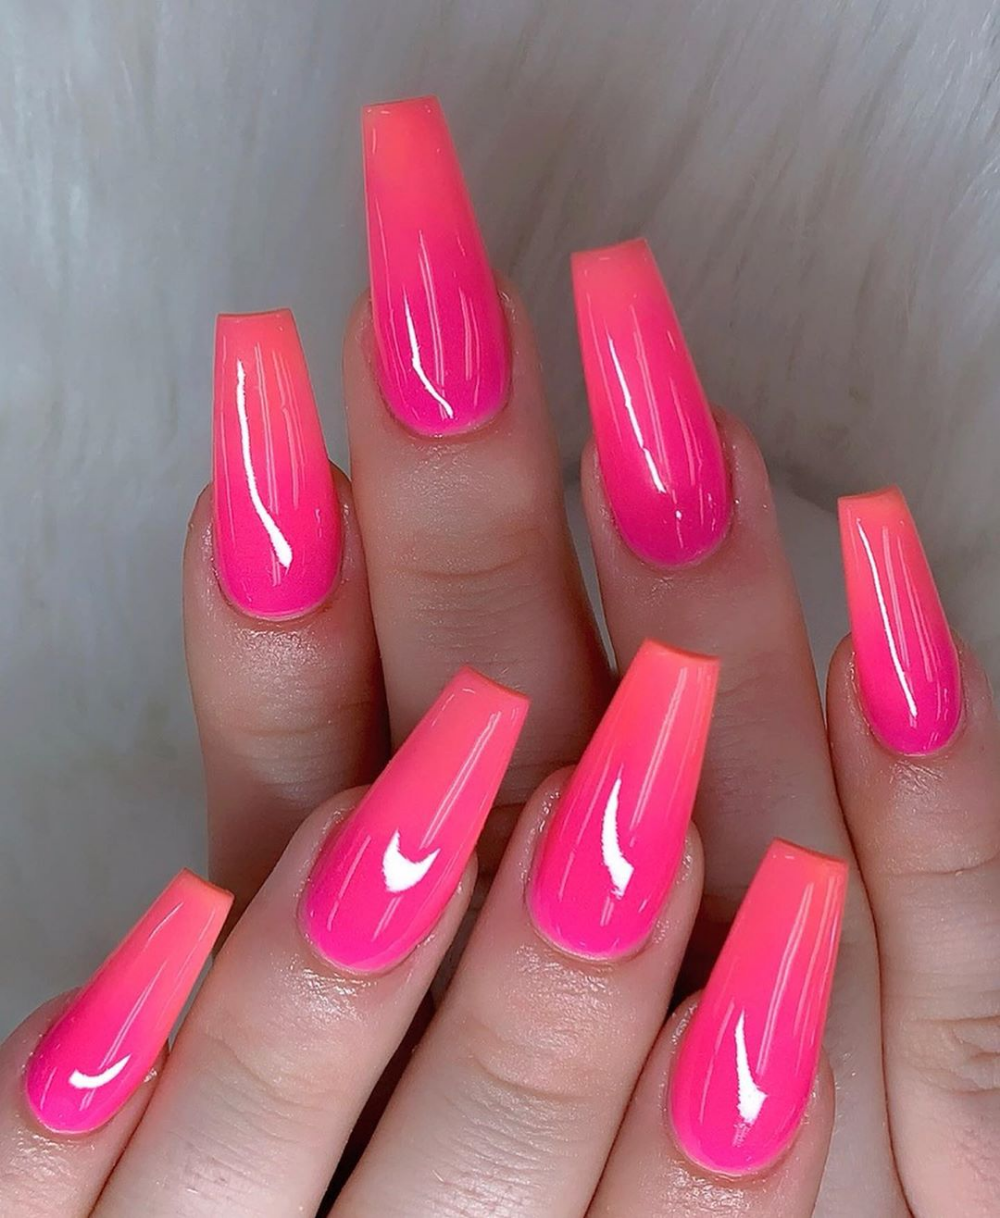 51 Pretty Crystal Nails Art Designs In Summer 2019 With Images Gelove Nehty Nehty Ruzove Nehty